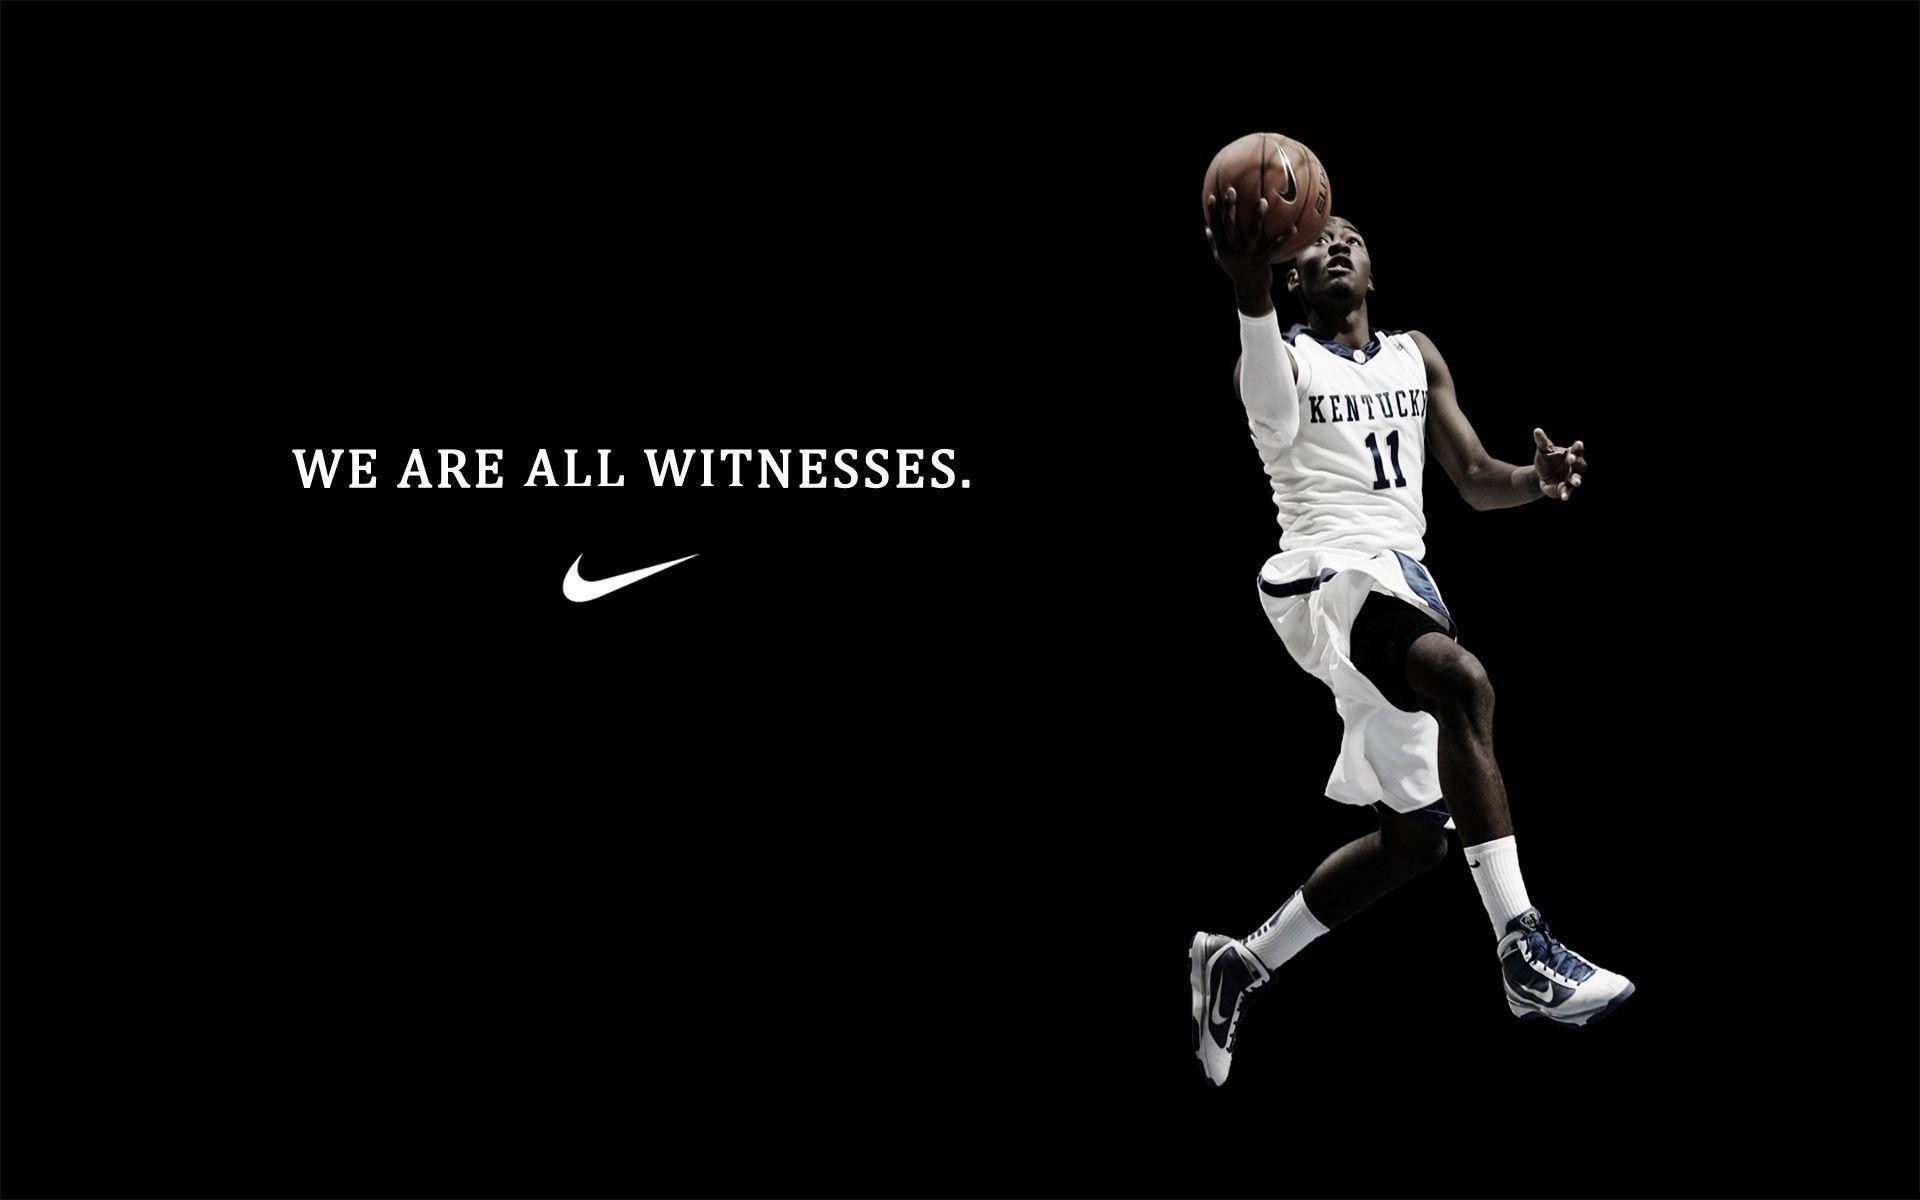 Wallpapers For > Nike Wallpaper Just Do It Basketball